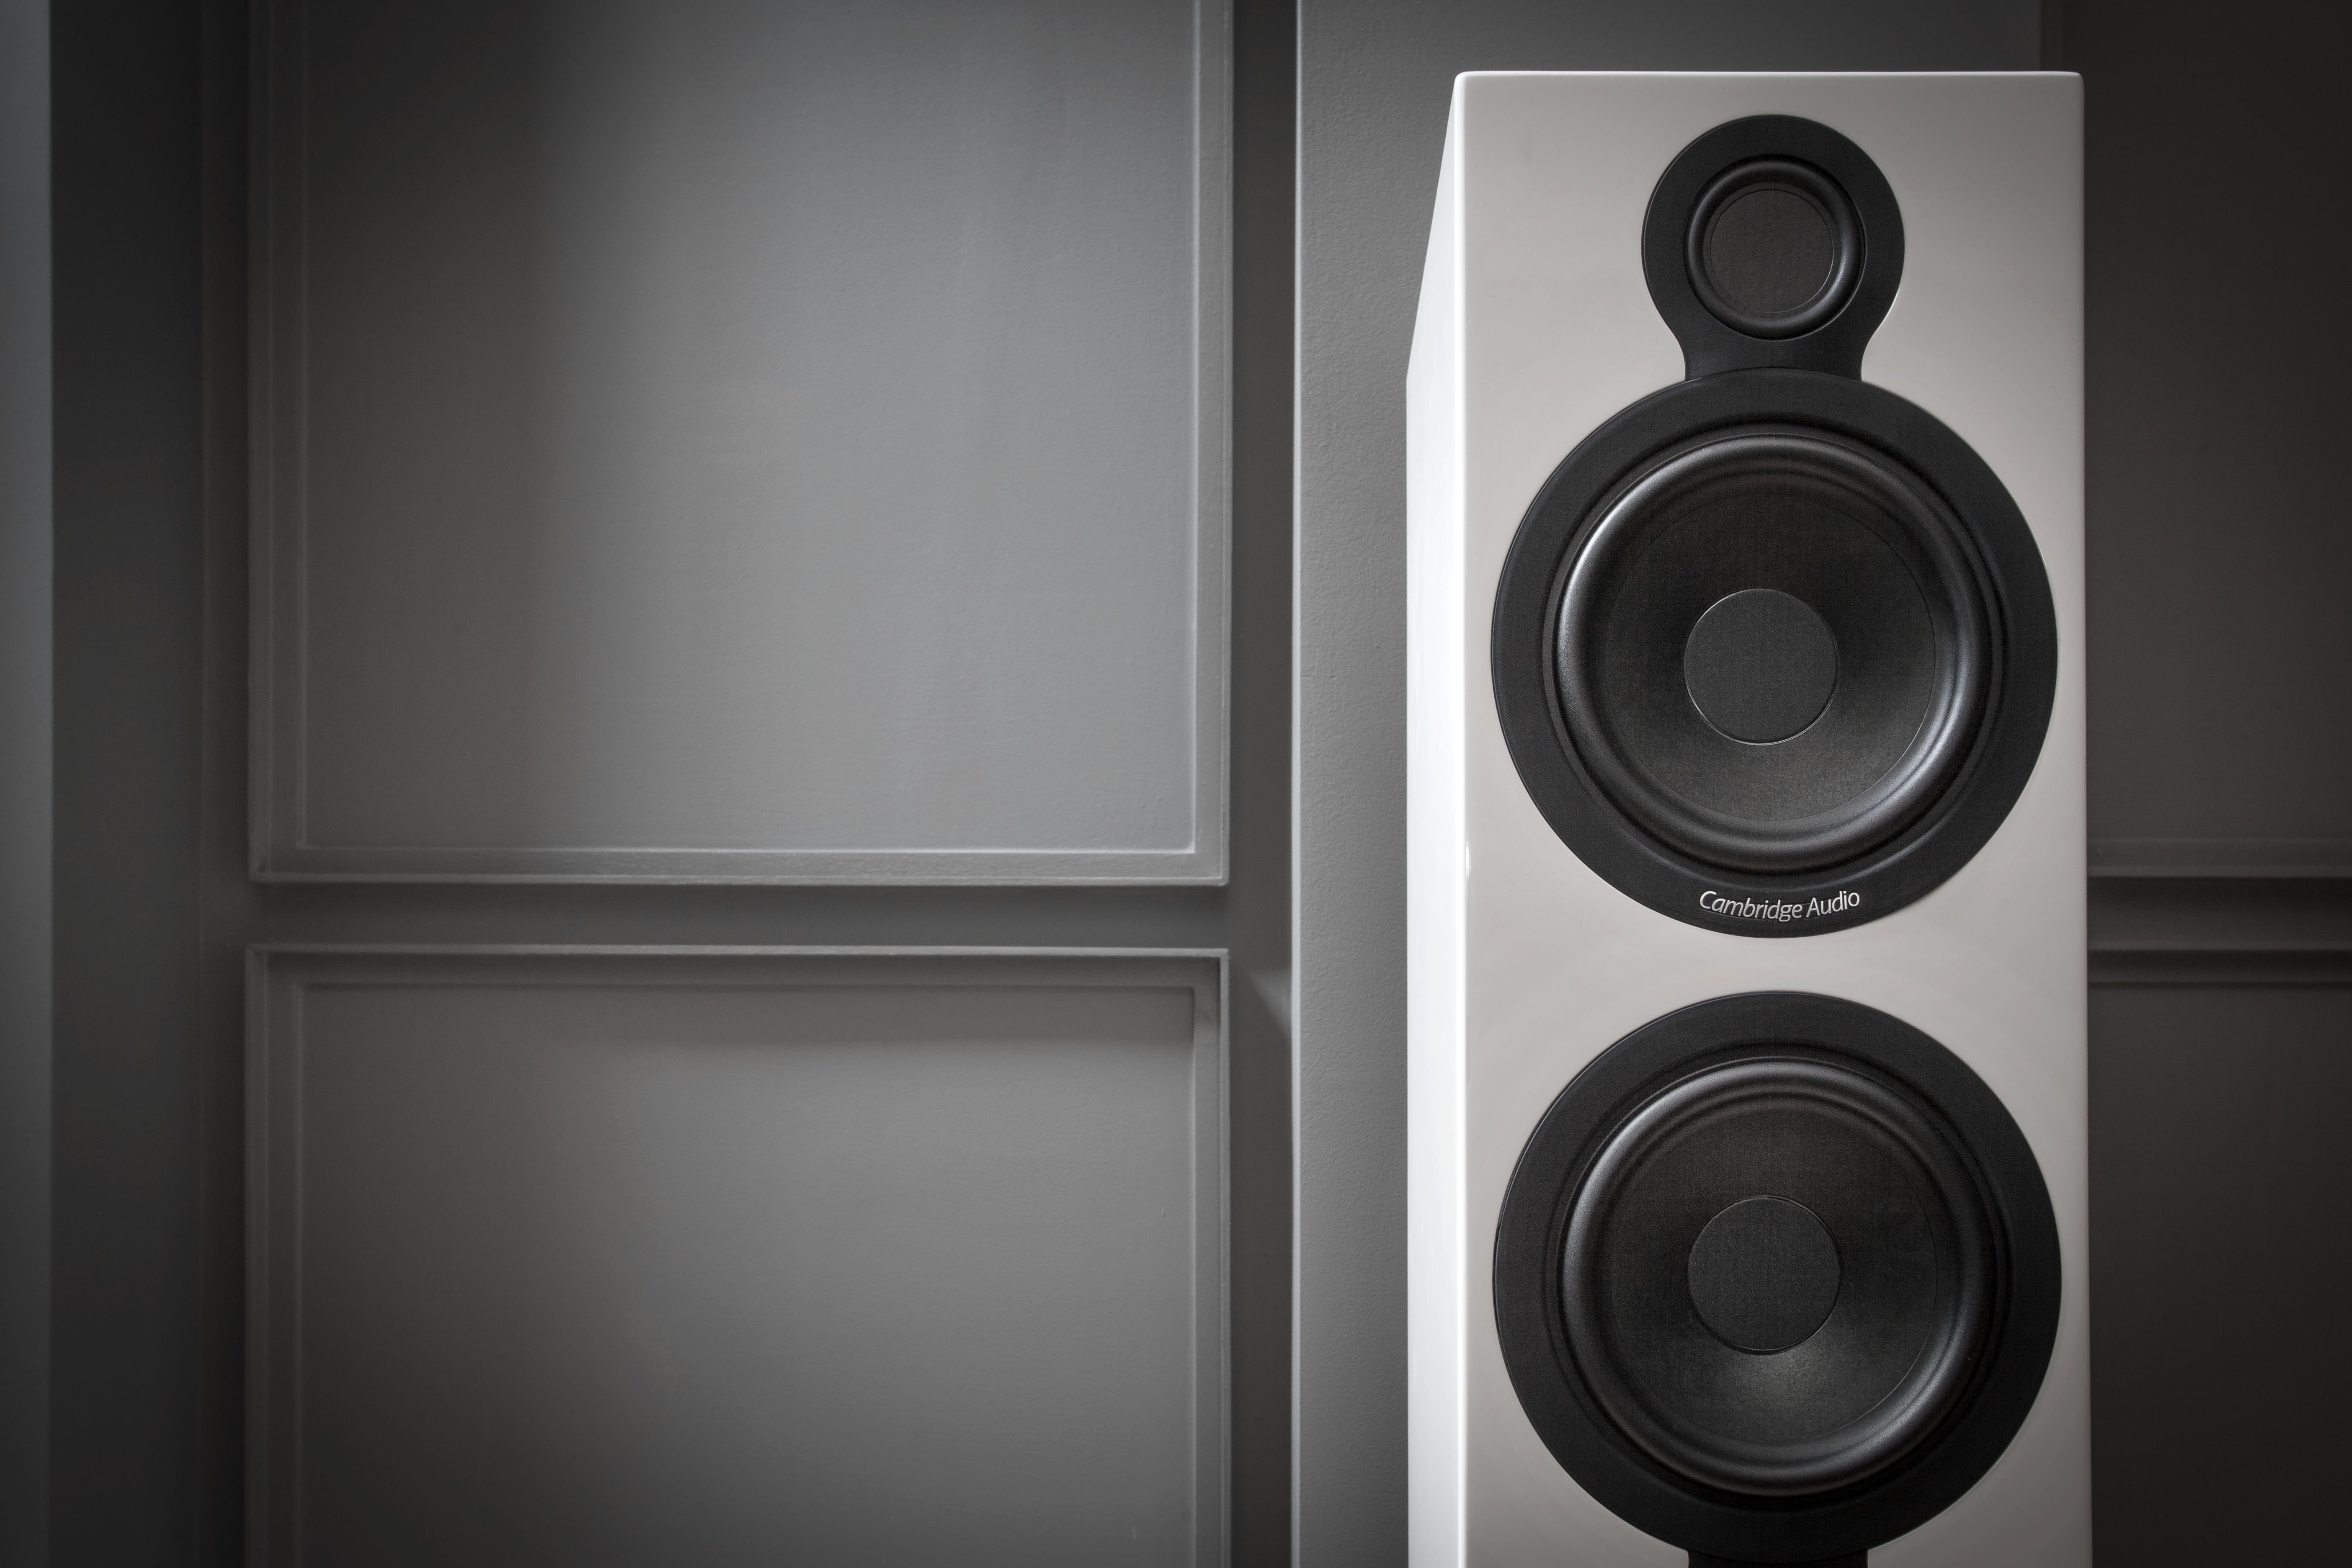 Test your speakers like a Cambridge Audio Engineer